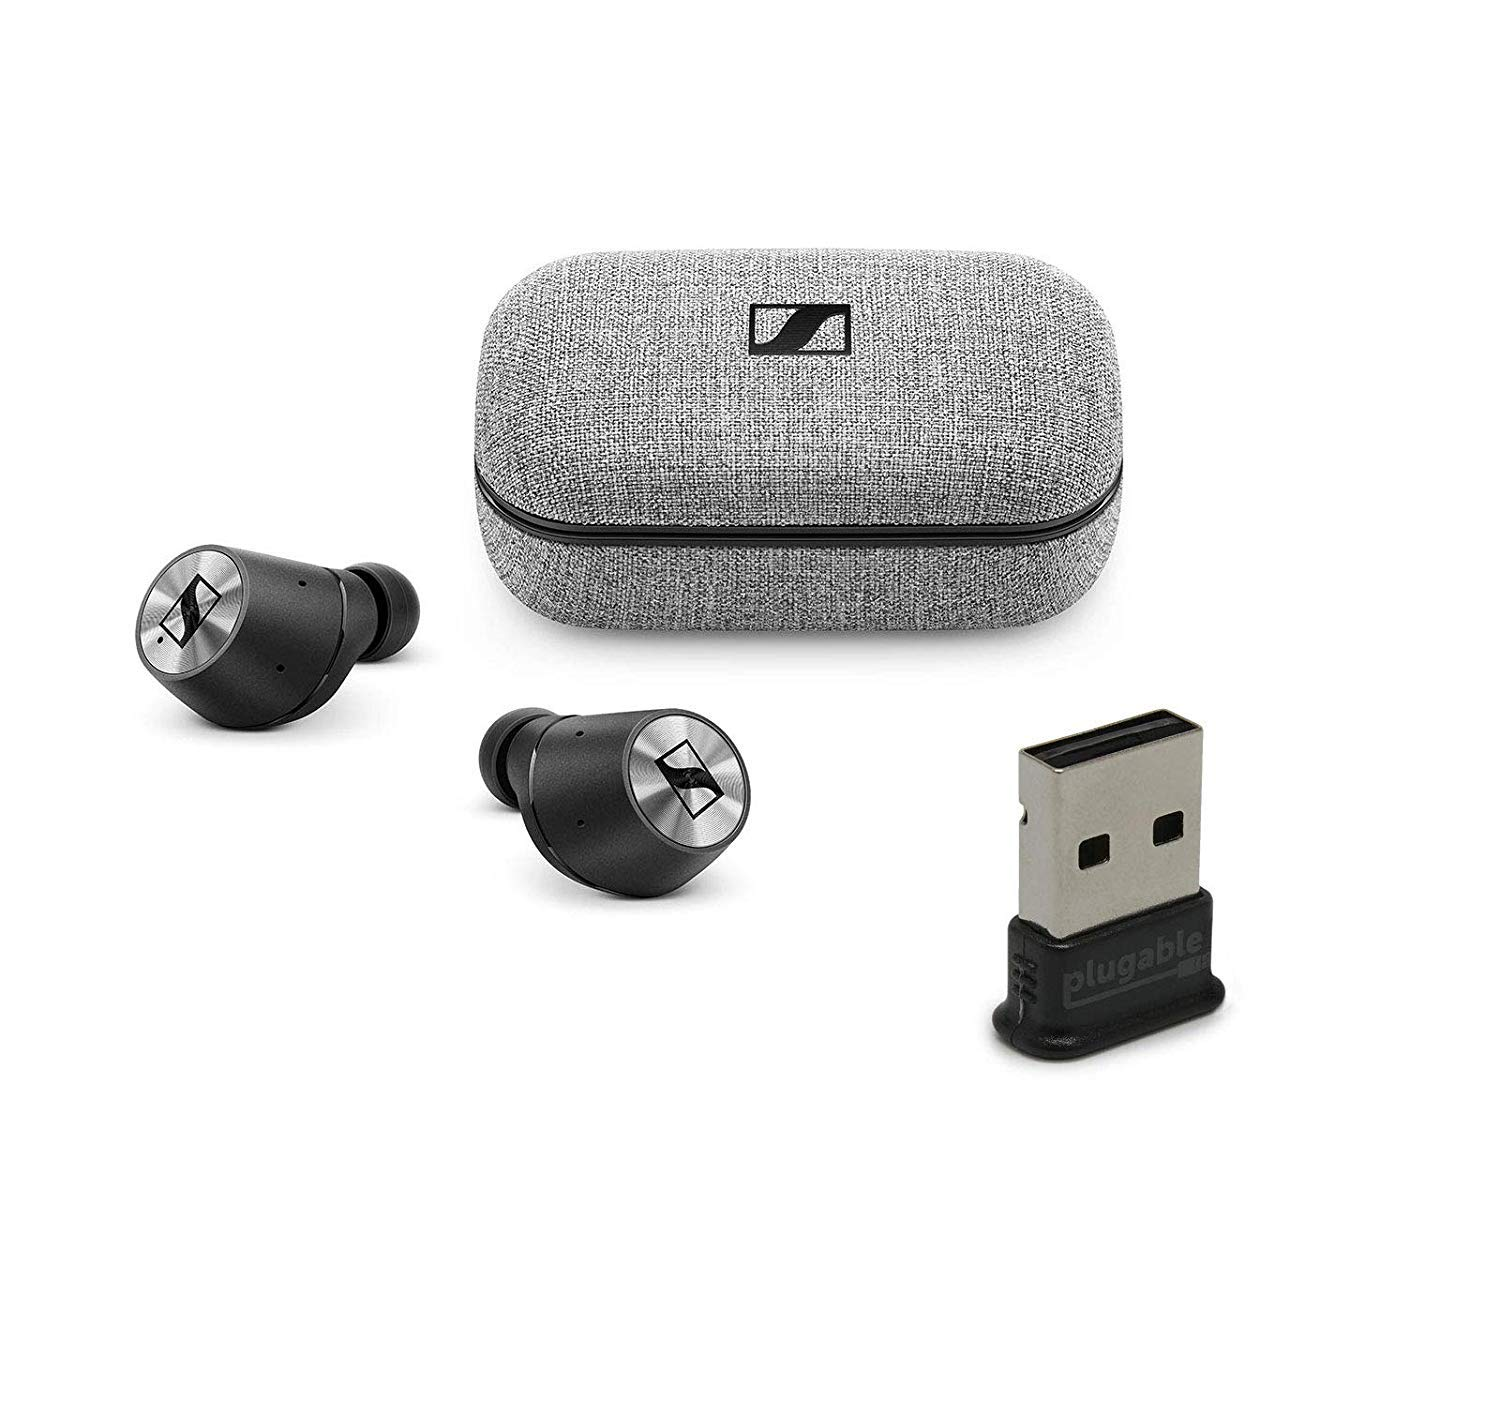 Sennheiser Momentum True Wireless Bluetooth Earbuds Bundle with USB-BT4LE USB 2.0 Bluetooth Adapter – Fingertip Touch Control